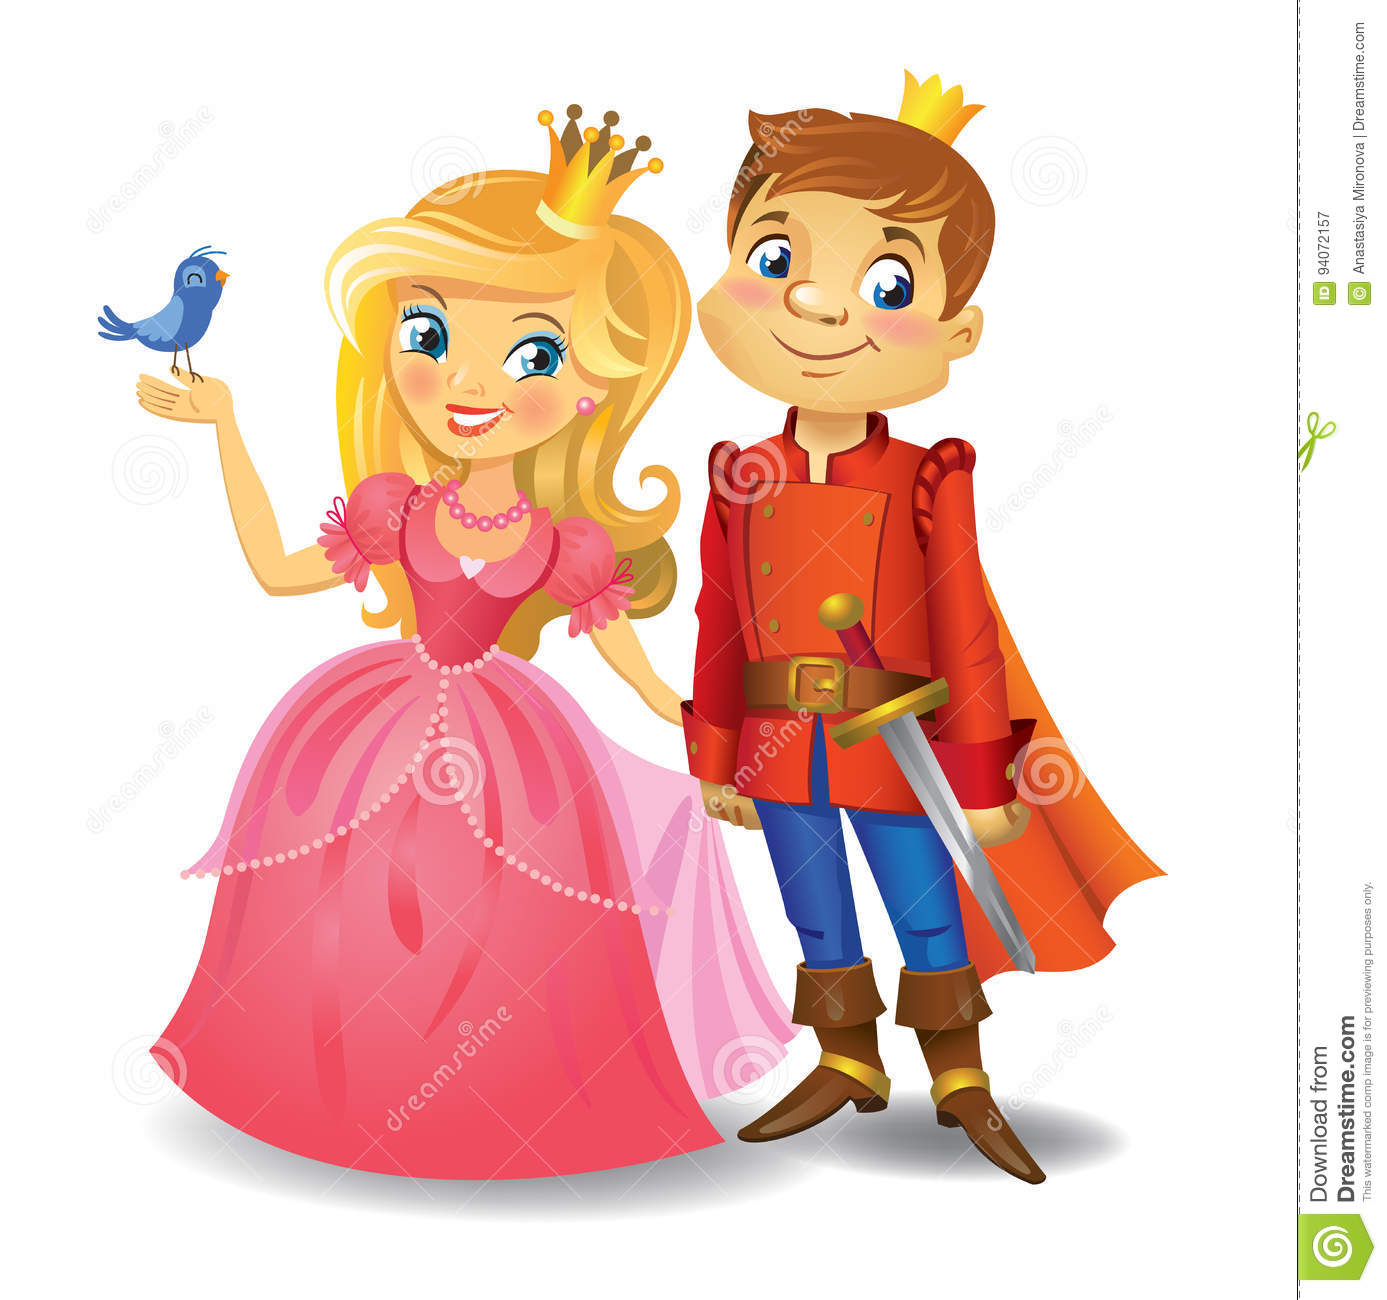 Beautiful Prince And Princess Cartoon Vector. World Map North America Template. Resume For Library Job Template. Invoice Templates Free. Printable Primary Writing Paper Template. Business Needs Assessment Template. Pta Resume Examples. Skills For Medical Assistant Resumes Template. Sales Commission Structure Template